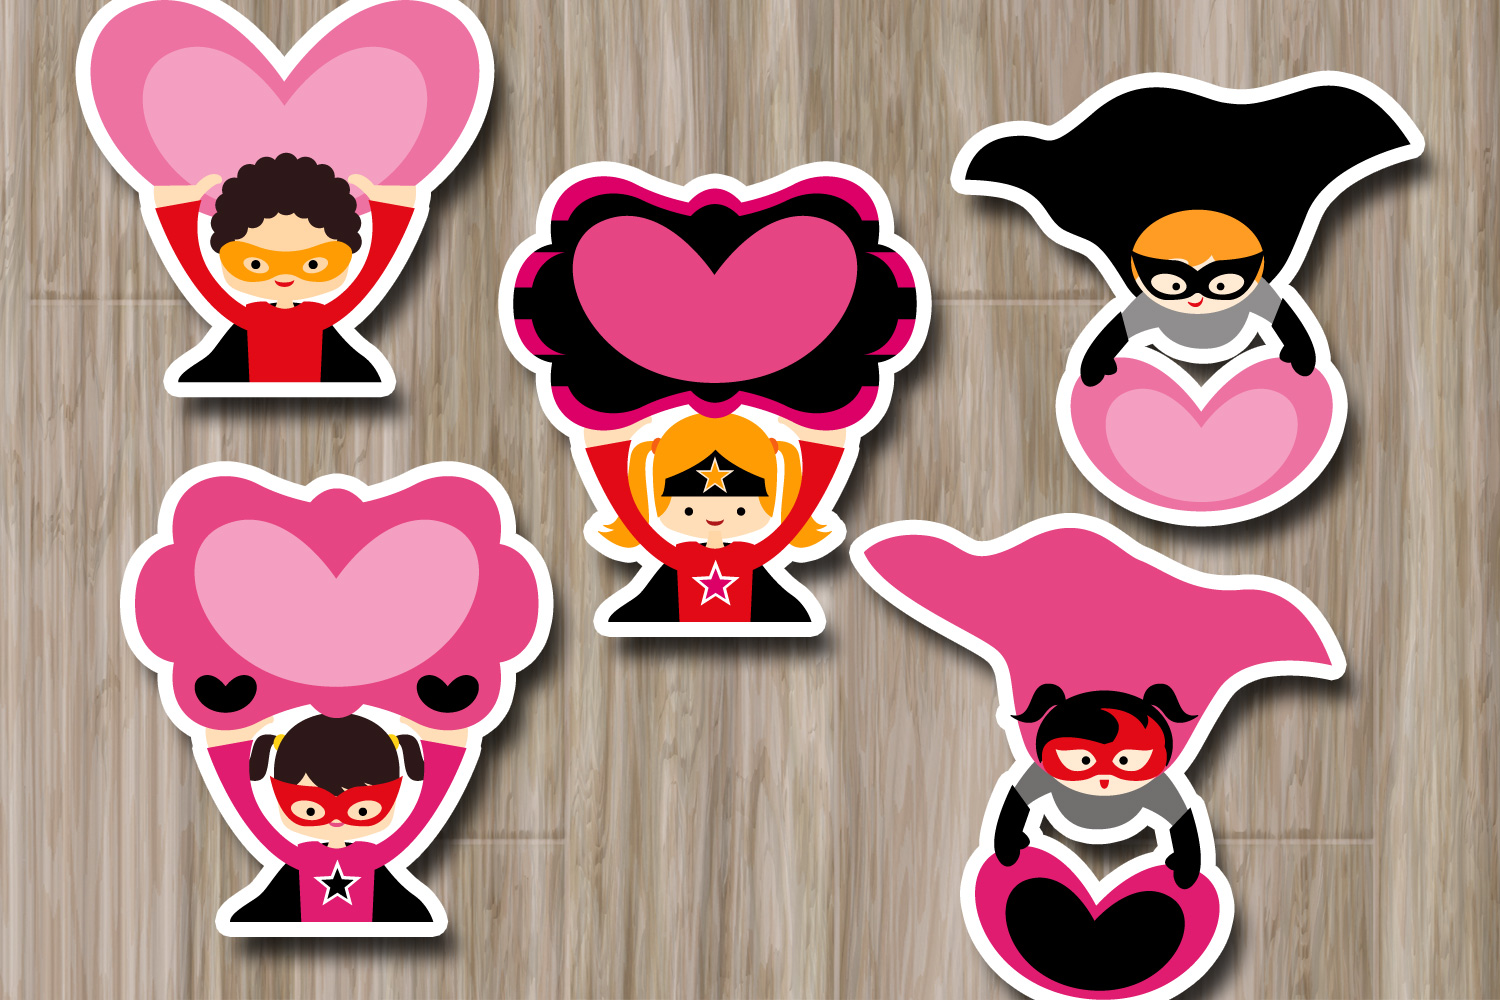 Superhero holds heart sign clipart graphic illustrations example image 2